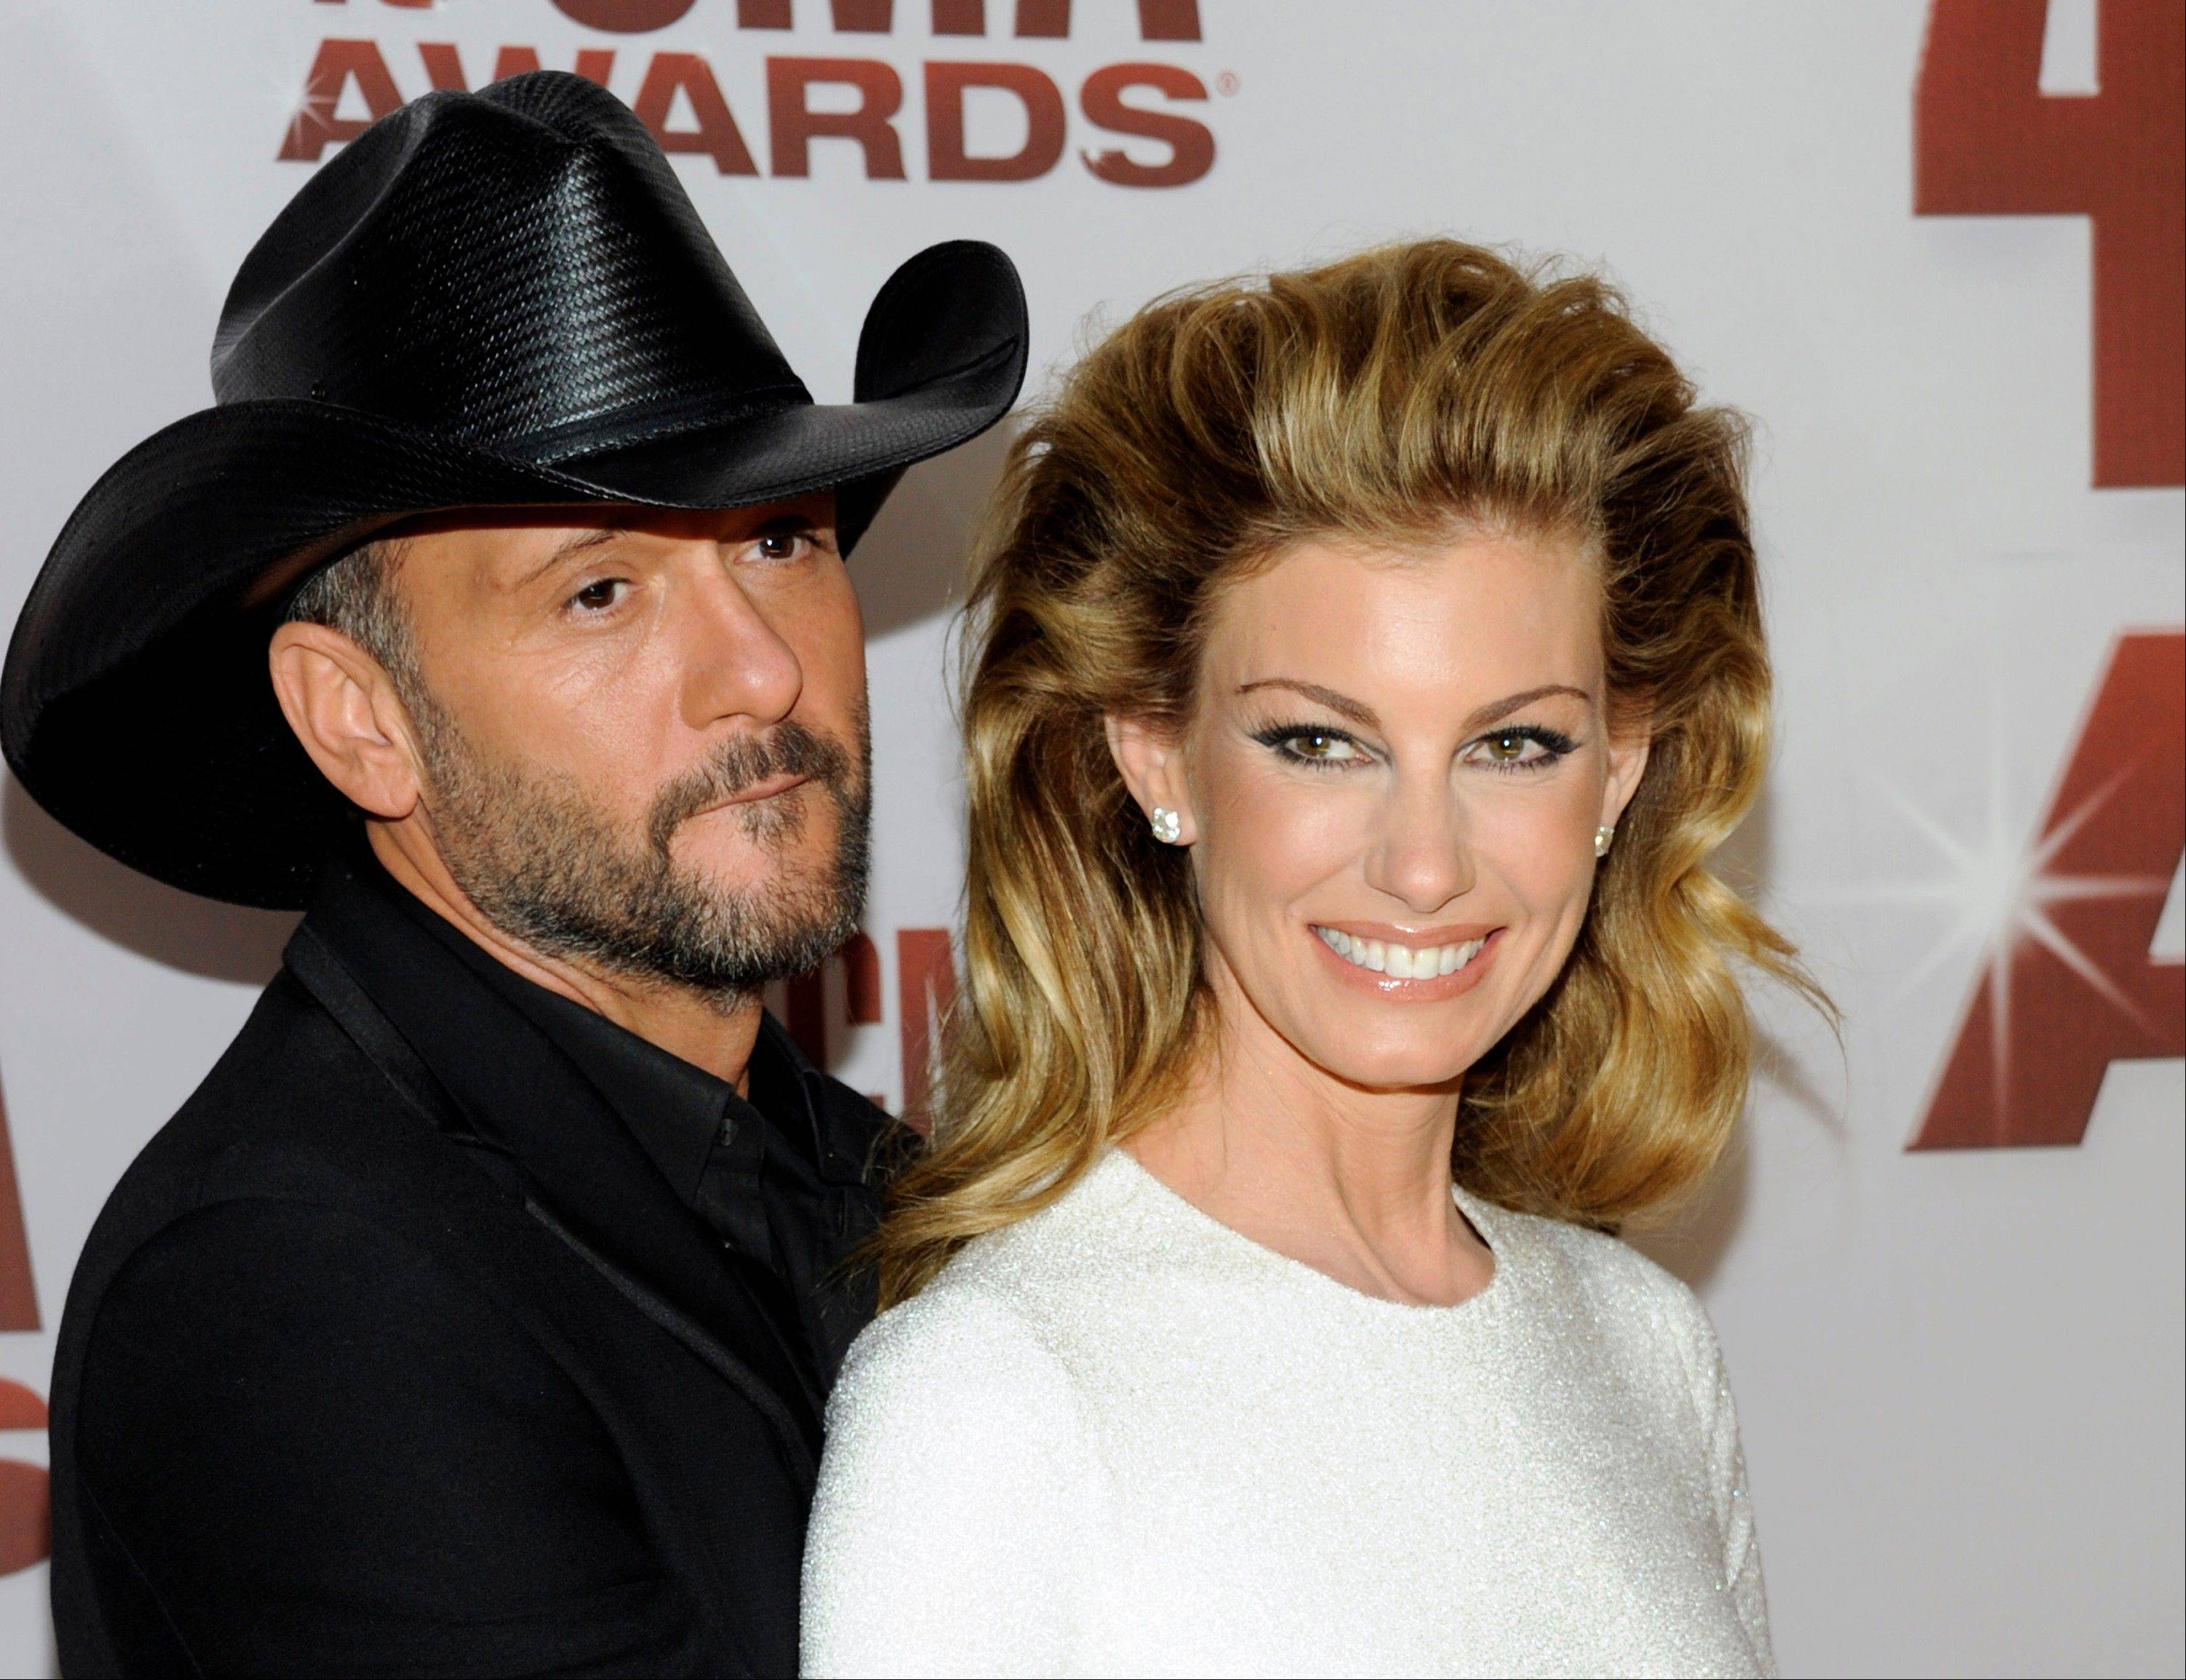 This Nov. 9, 2011 file photo shows country singers Tim McGraw, left, and his wife Faith Hill at the 45th Annual CMA Awards in Nashville, Tenn. McGraw and Hill are brushing off divorce rumors as they power into a new round of Soul2Soul duet performances in Las Vegas. The country music royals sat close and joked with each other about tabloid headlines during a round table interview with reporters before their Friday show at the Venetian casino.